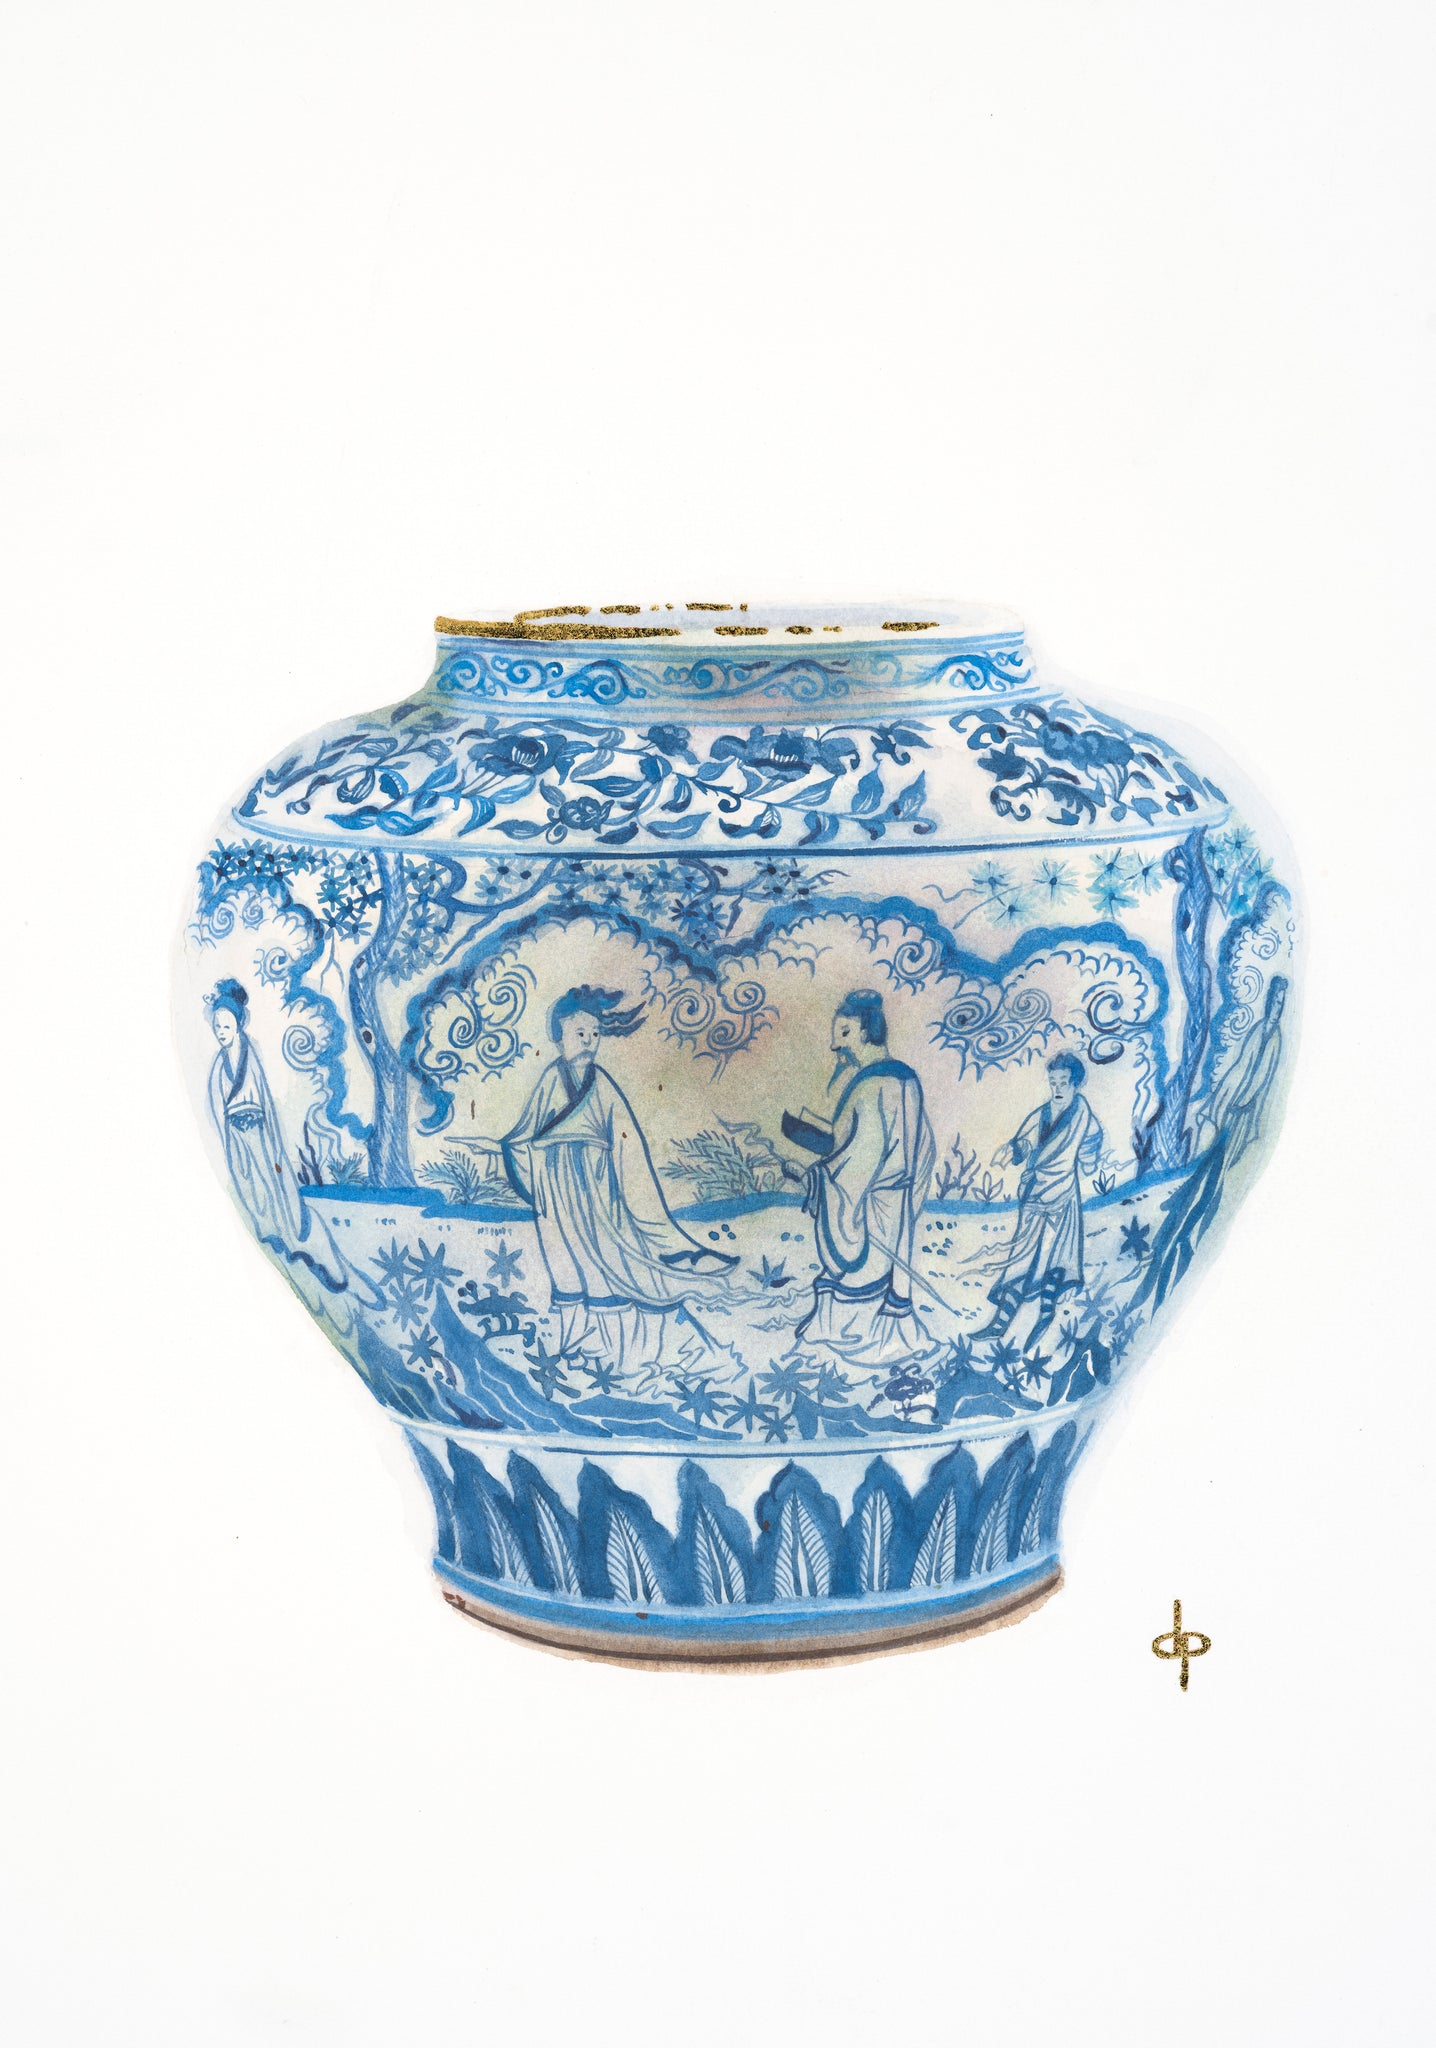 Jingdezhen Wine Jar from Collection of the Victoria and Albert Museum